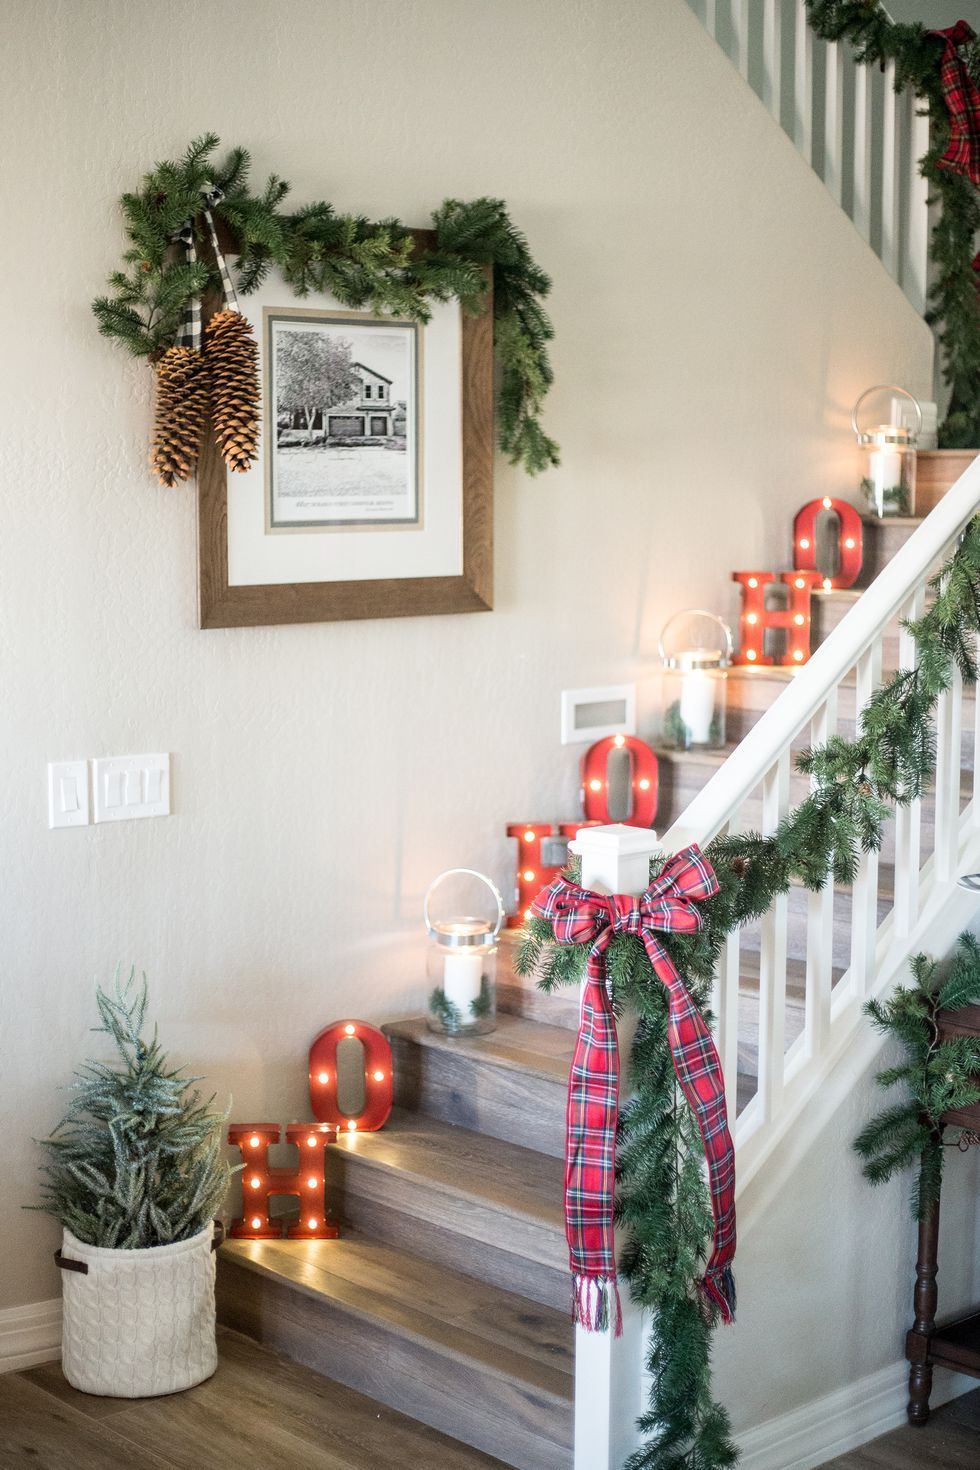 10 lovely christmas stair decorations holiday staircase decor ideas - How To Decorate Stairs For Christmas